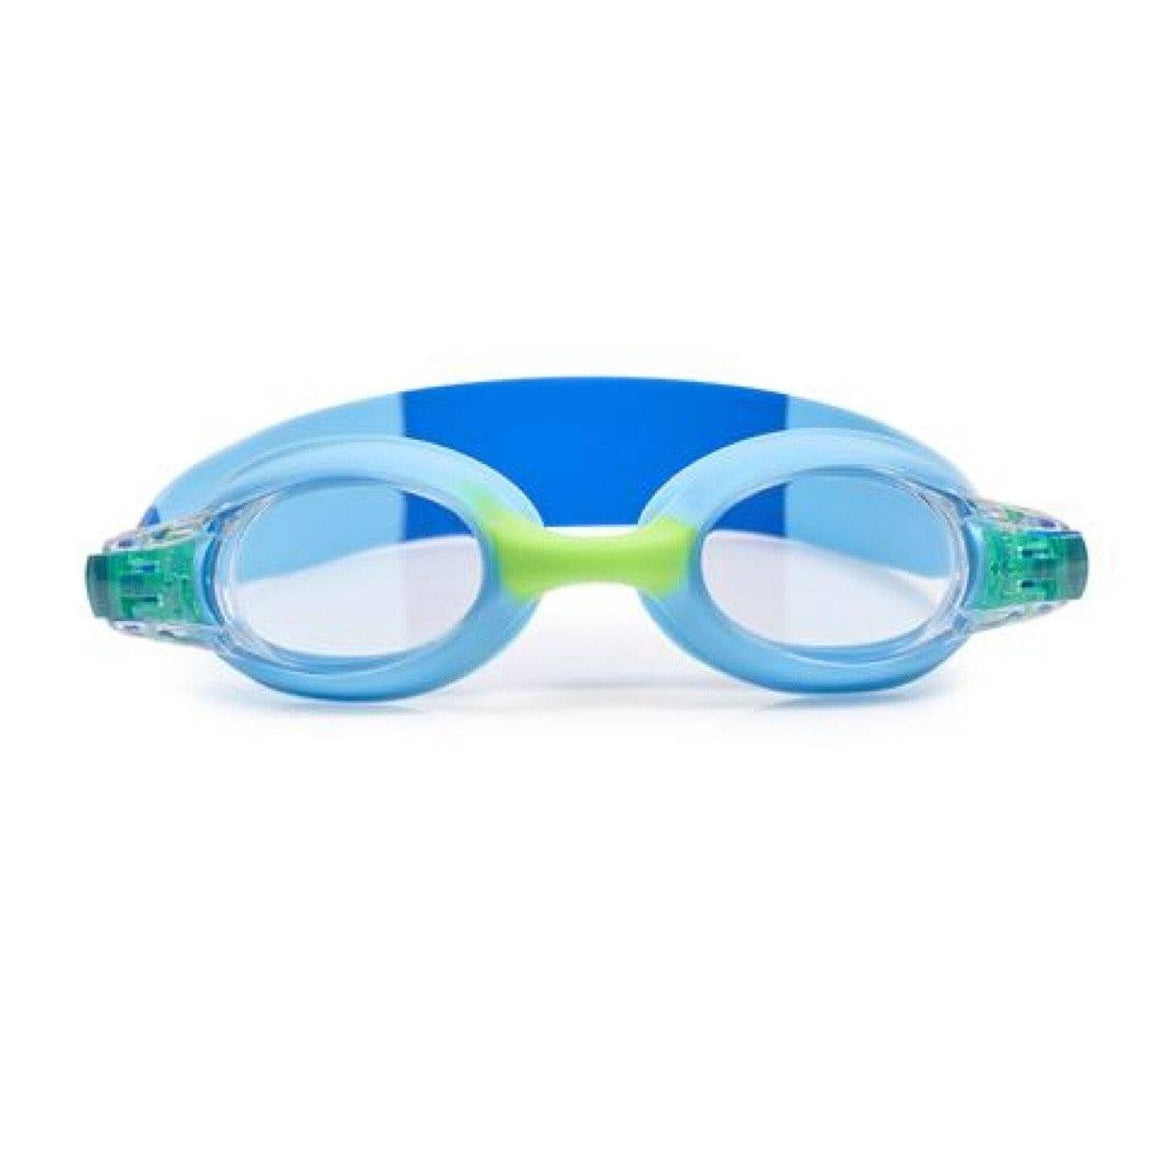 Bling2O - Itzy Boys Swim Goggles - Baby Boy Blue Swim Goggles Bling2O